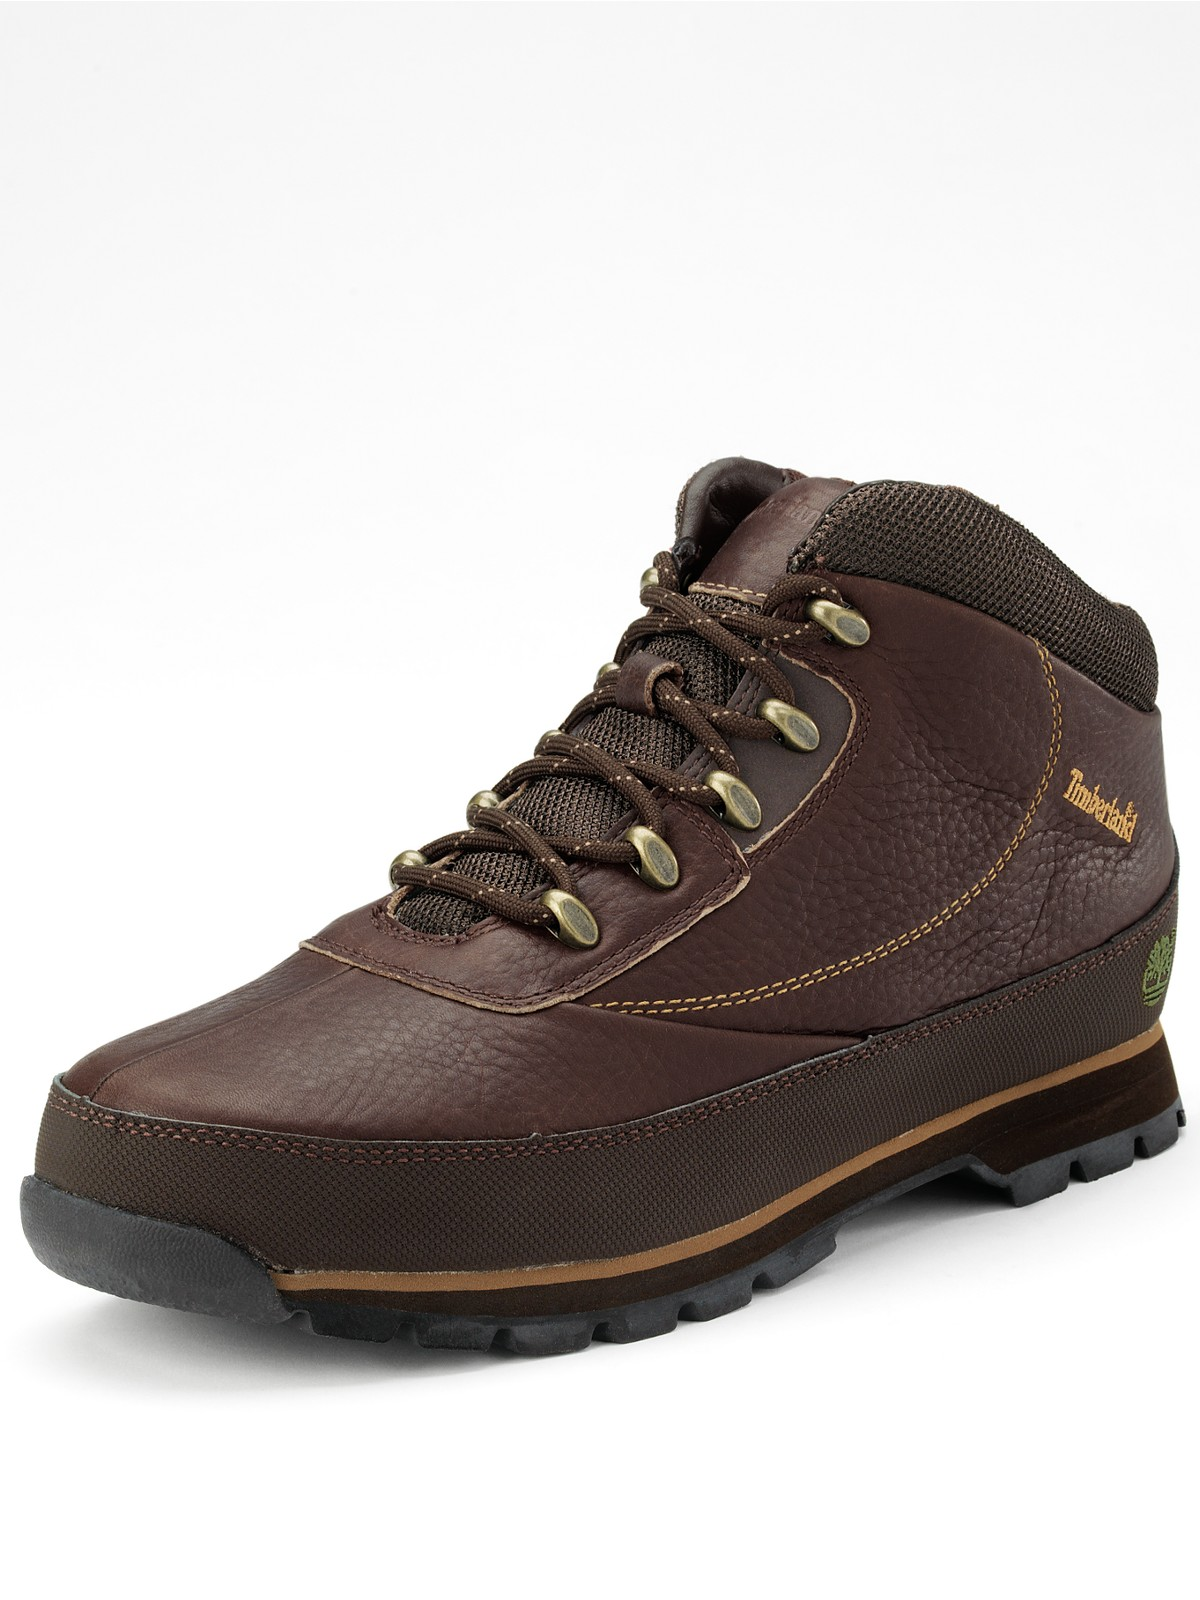 06c46abf363 Timberland Euro Hiker Boots - Ivoiregion